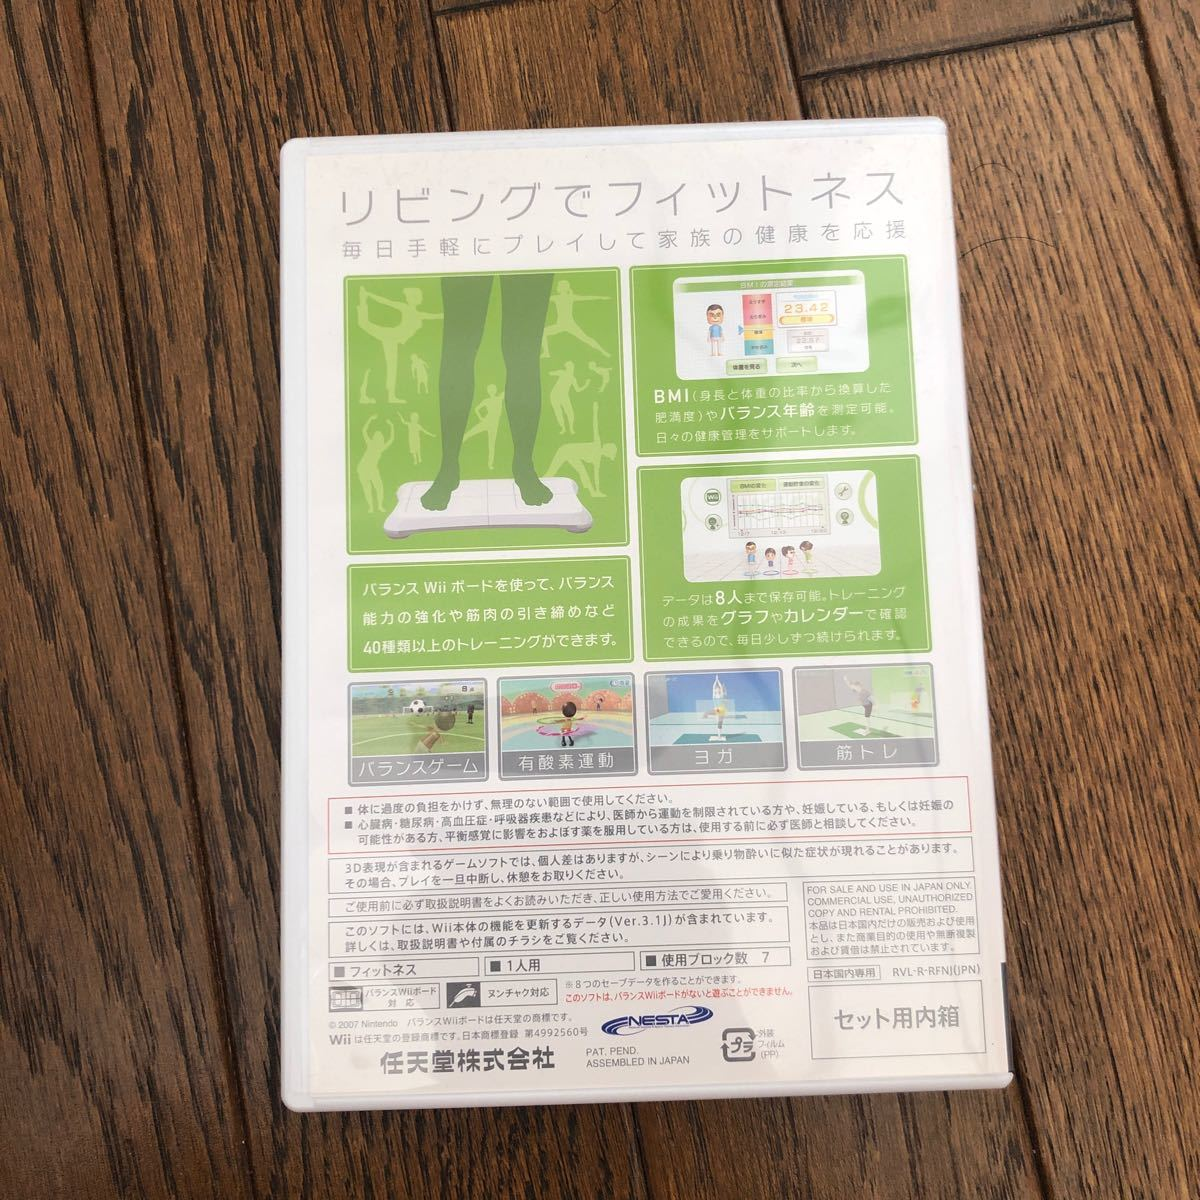 Wii FitWii Fit Wiiフィットプラス Wiiソフト ウィーフィット